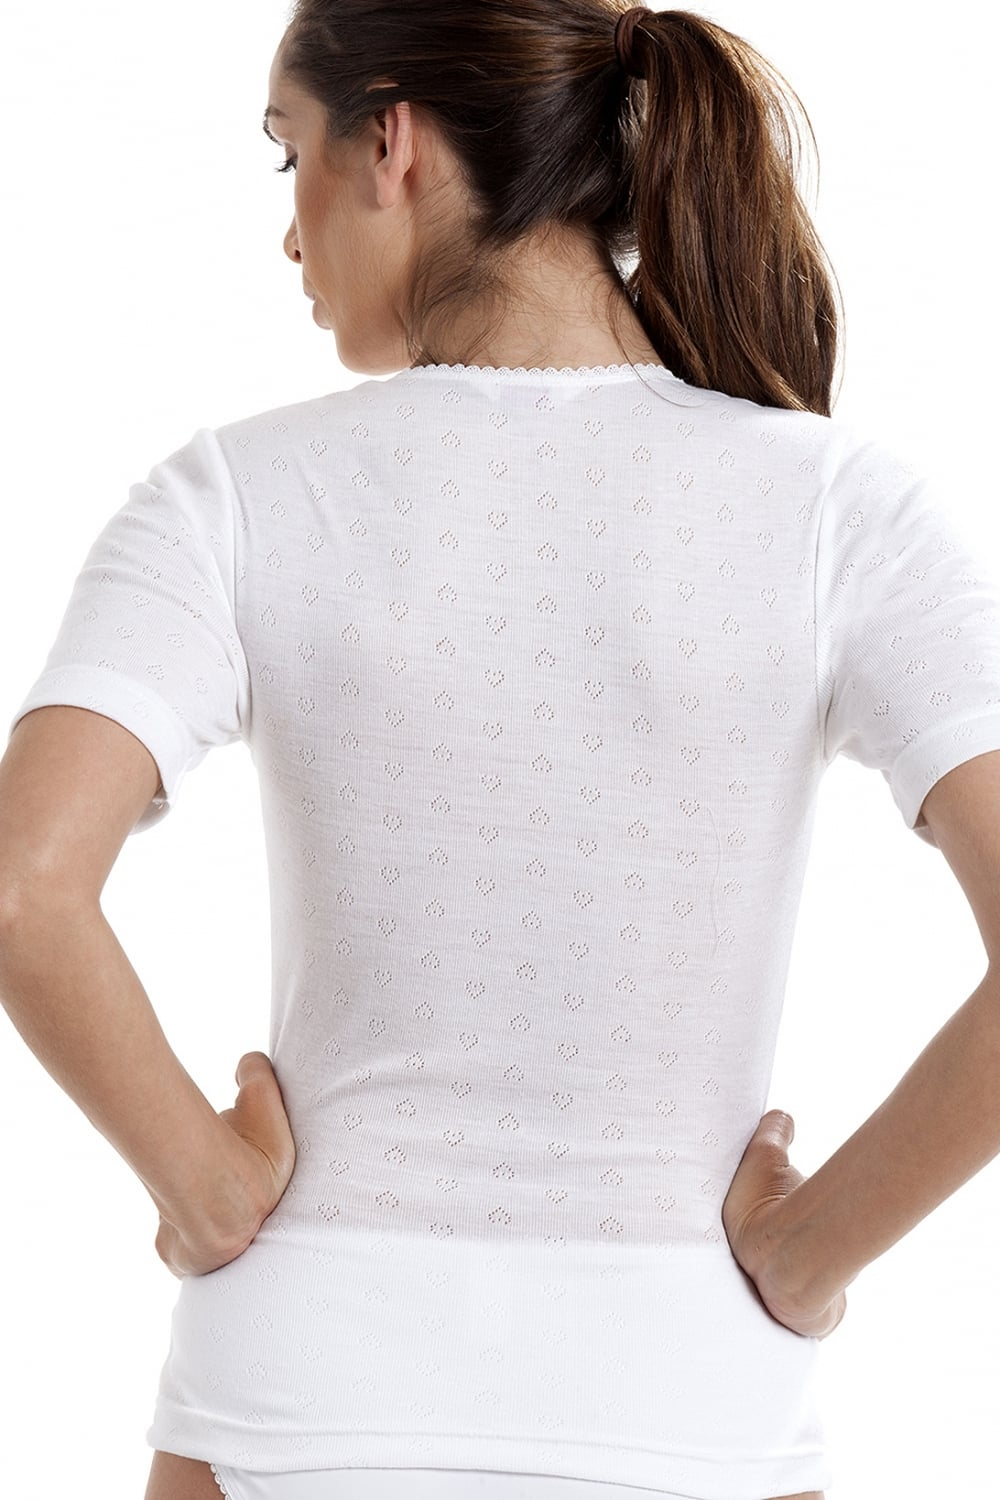 Camille Womens Short Sleeved Ladies Round Neck Thermal T-Shirt